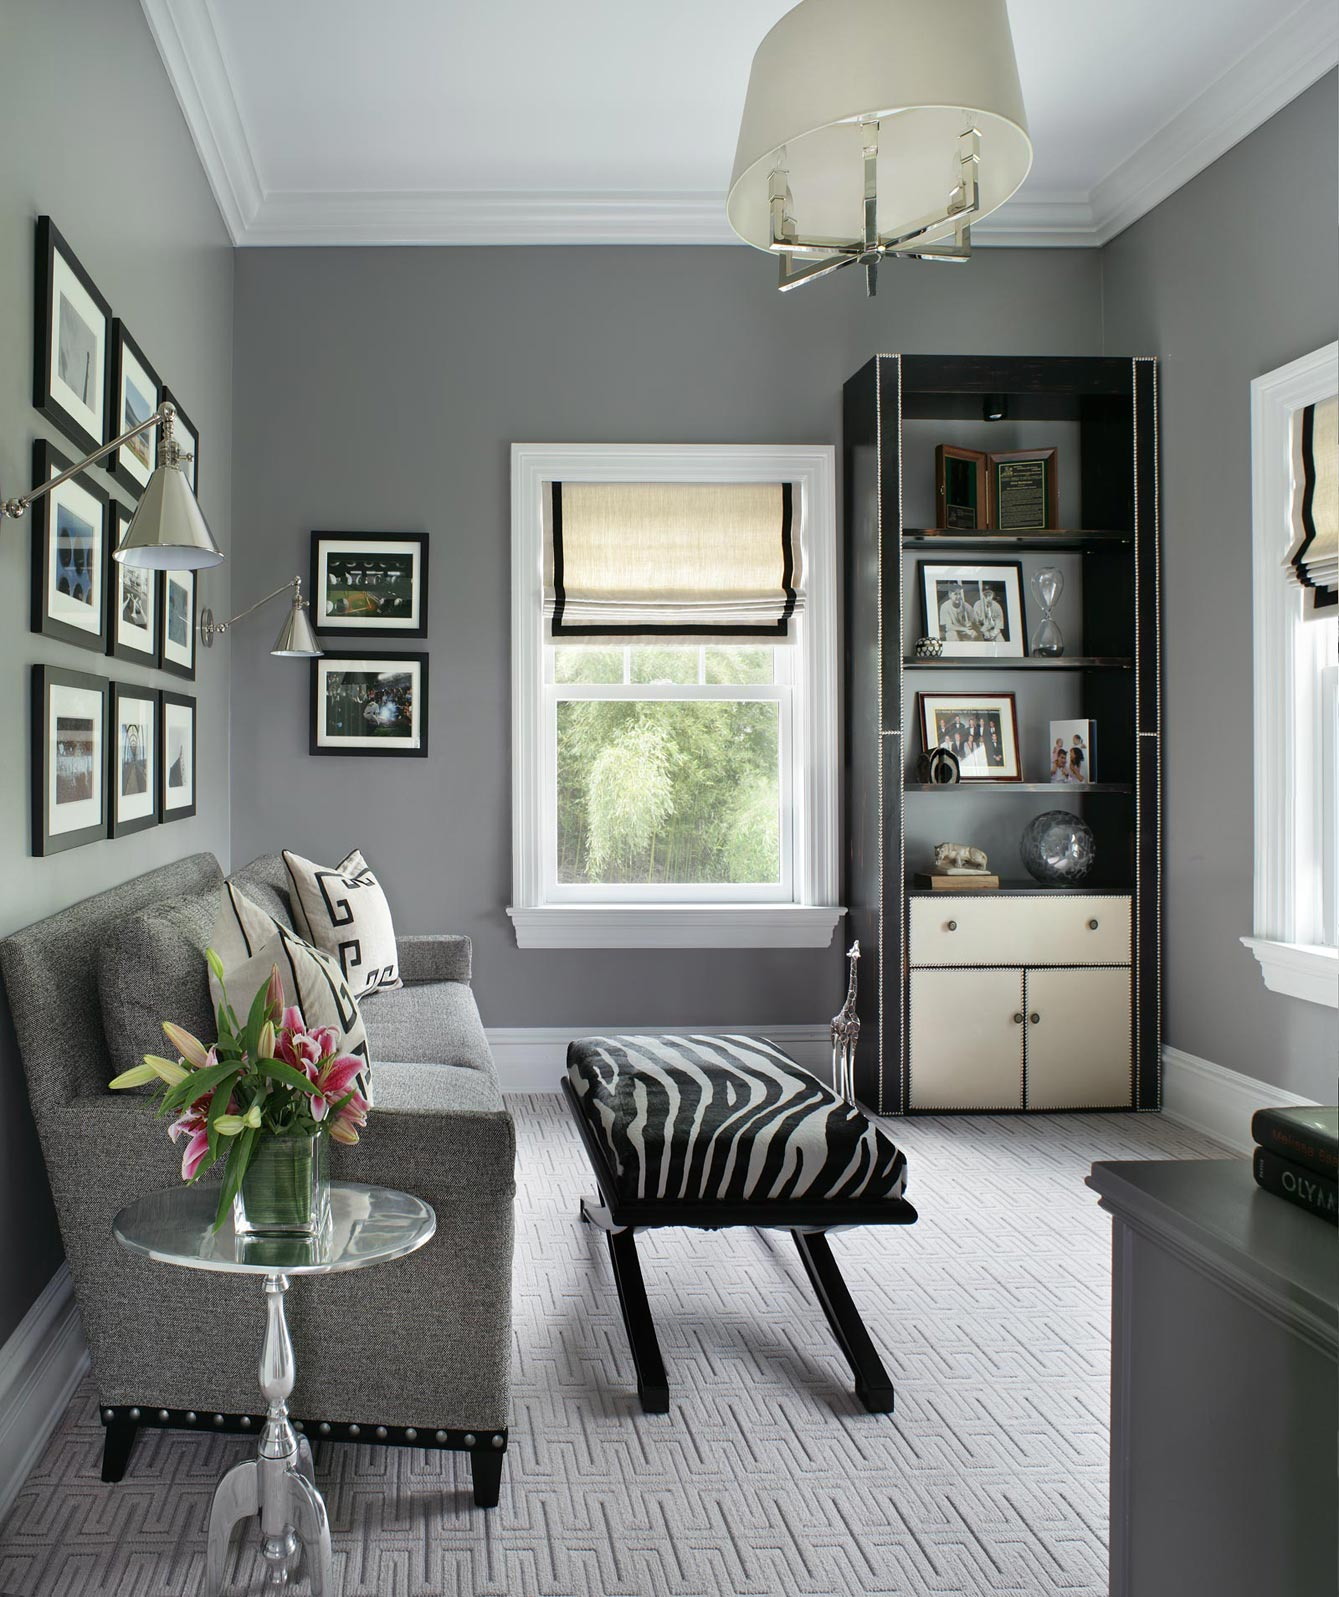 Larchmont, NY Study with Zebra hyde bench by Valerie Grant Interiors